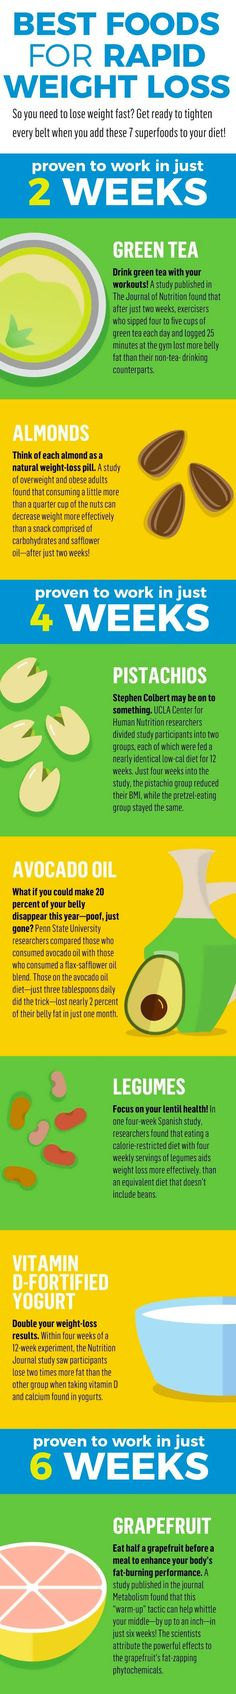 Best foods for rapid weight loss